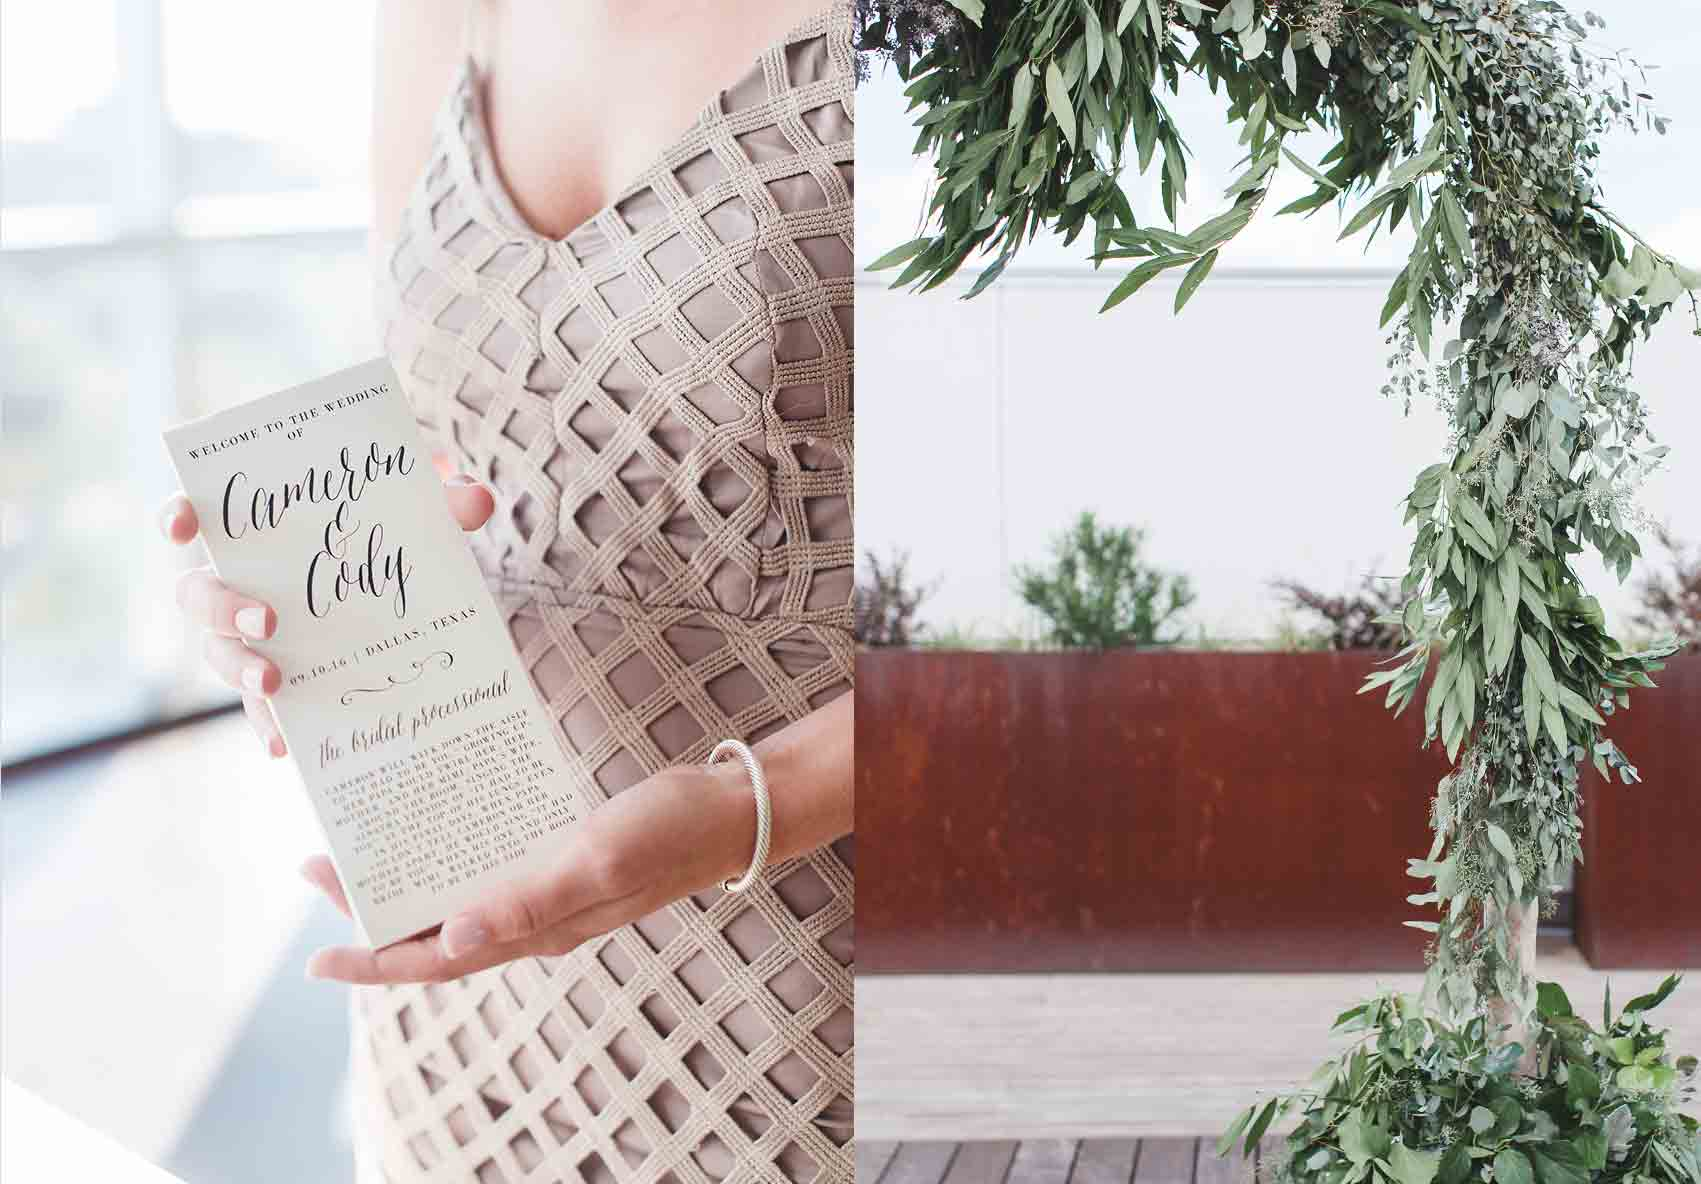 fashion-blogger-cameron-proffitt-has-romantic-dallas-rooftop-wedding-with-mixed-bridesmaids-dresses-and-neutral-color-palette-33